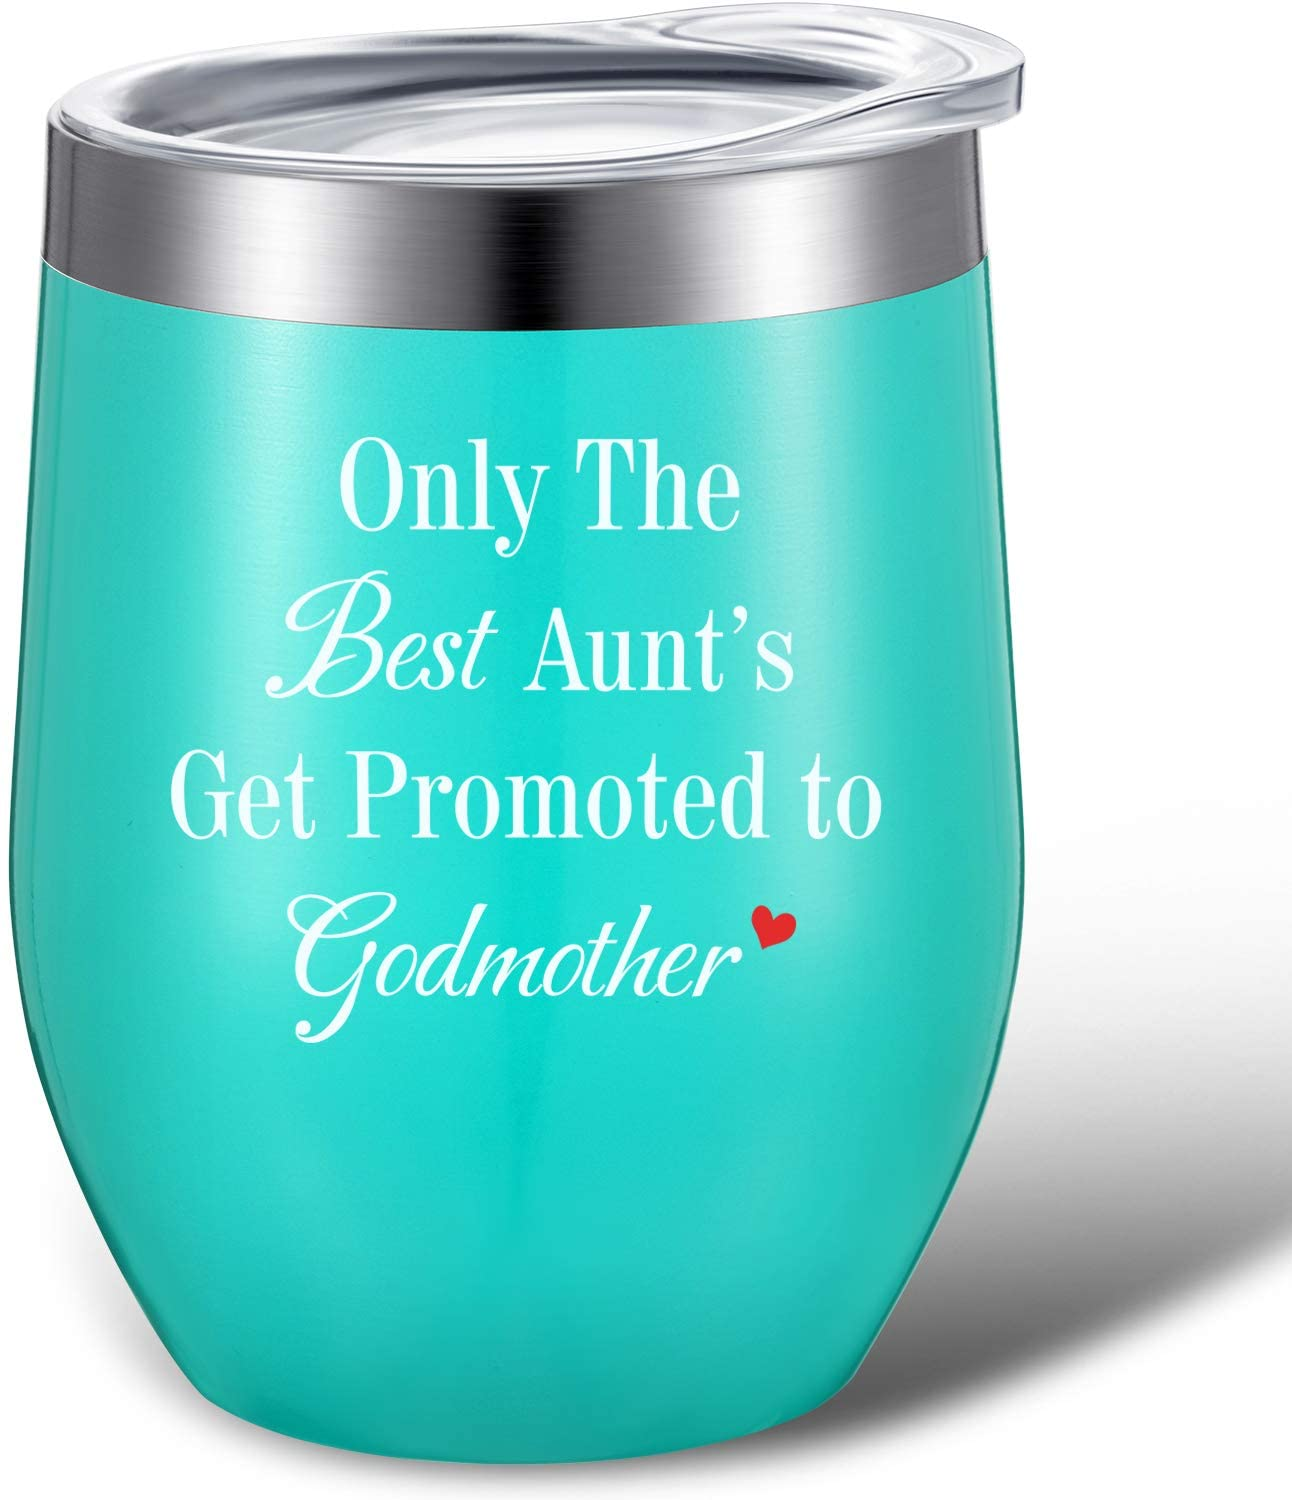 Only the Best Aunts Get Promoted to Godmother Mug Tumbler, Godmother Aunt Gifts for Birthday, Mothers Day, Christmas, Thanksgiving Day, Double Wall Vacuum Wine Tumbler Cup with Gift Box (Mint, 12 oz)